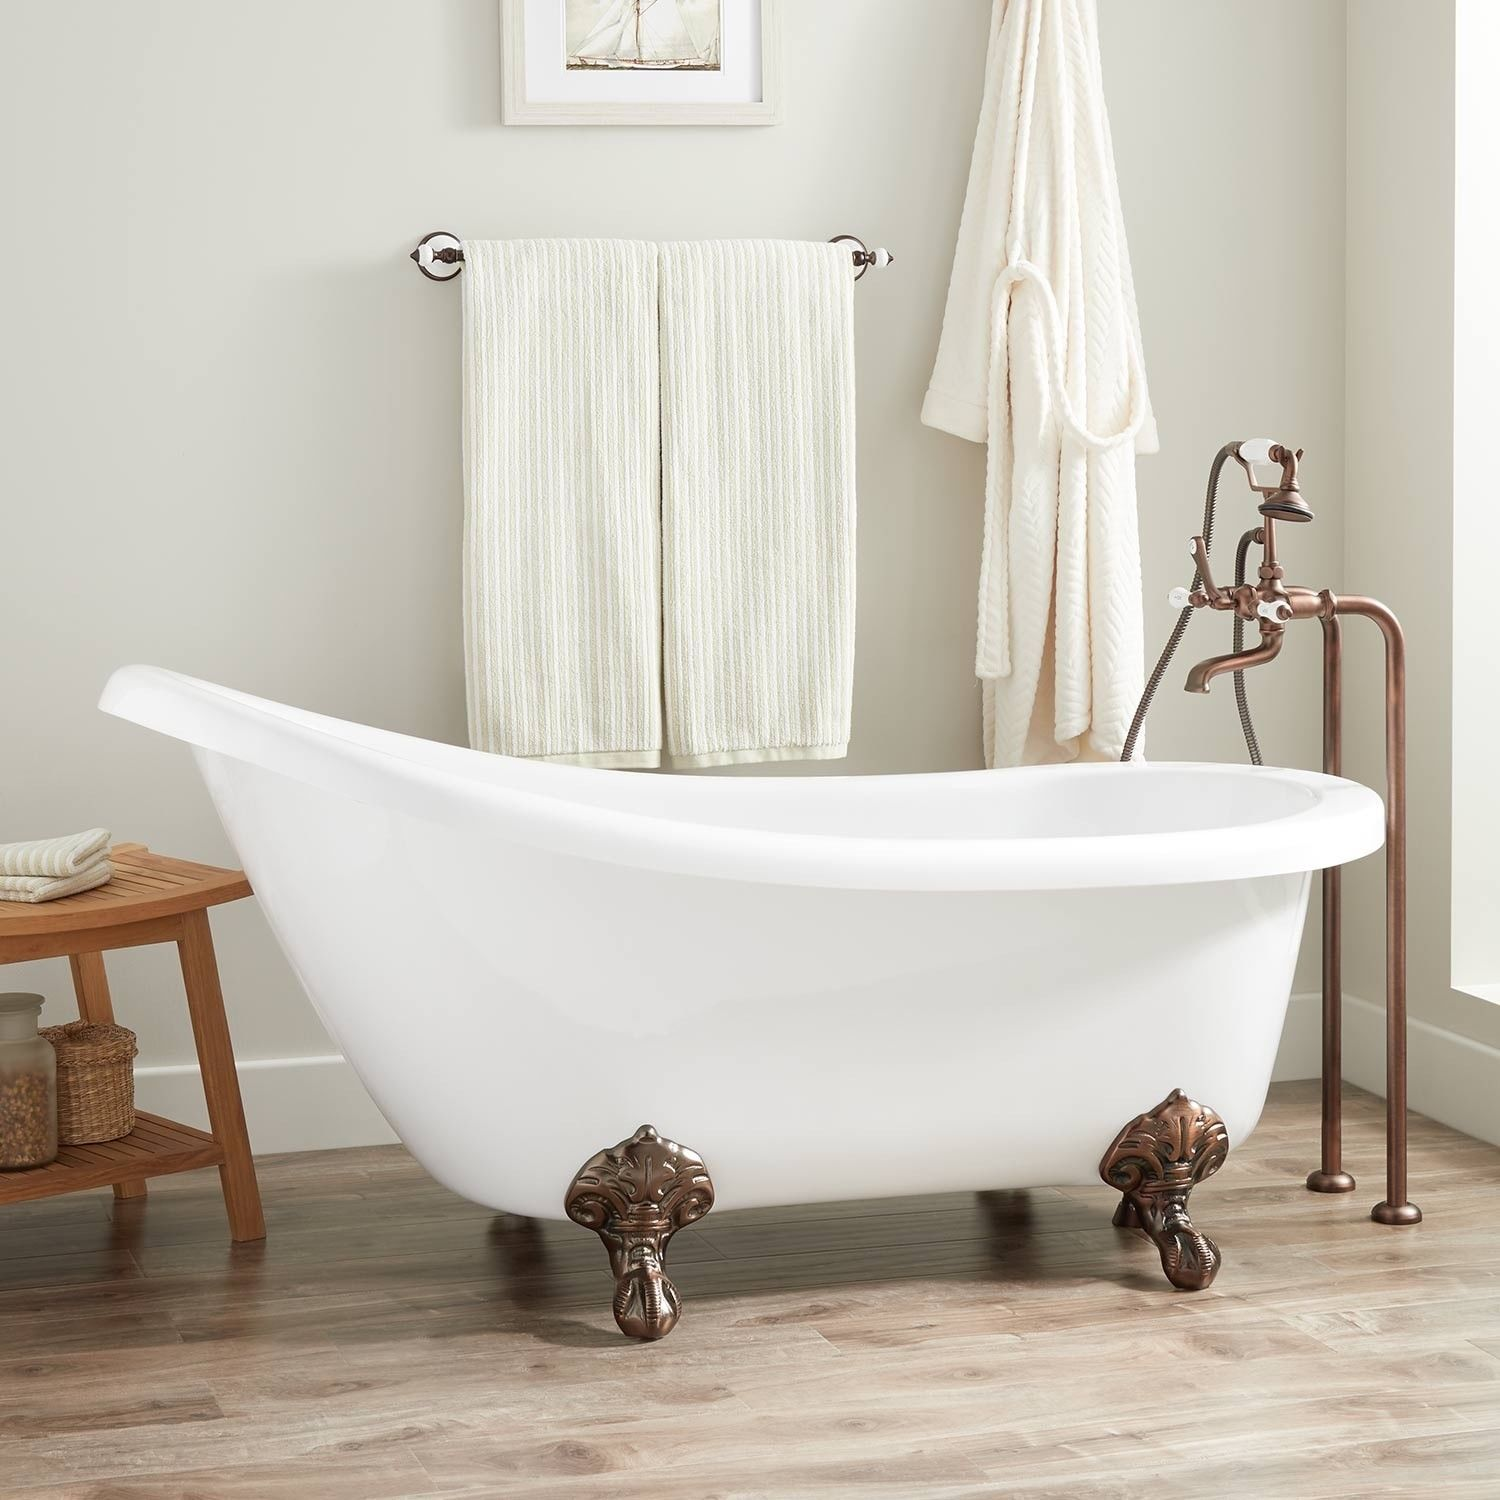 Signature hardware victorian acrylic slipper clawfoot tub with